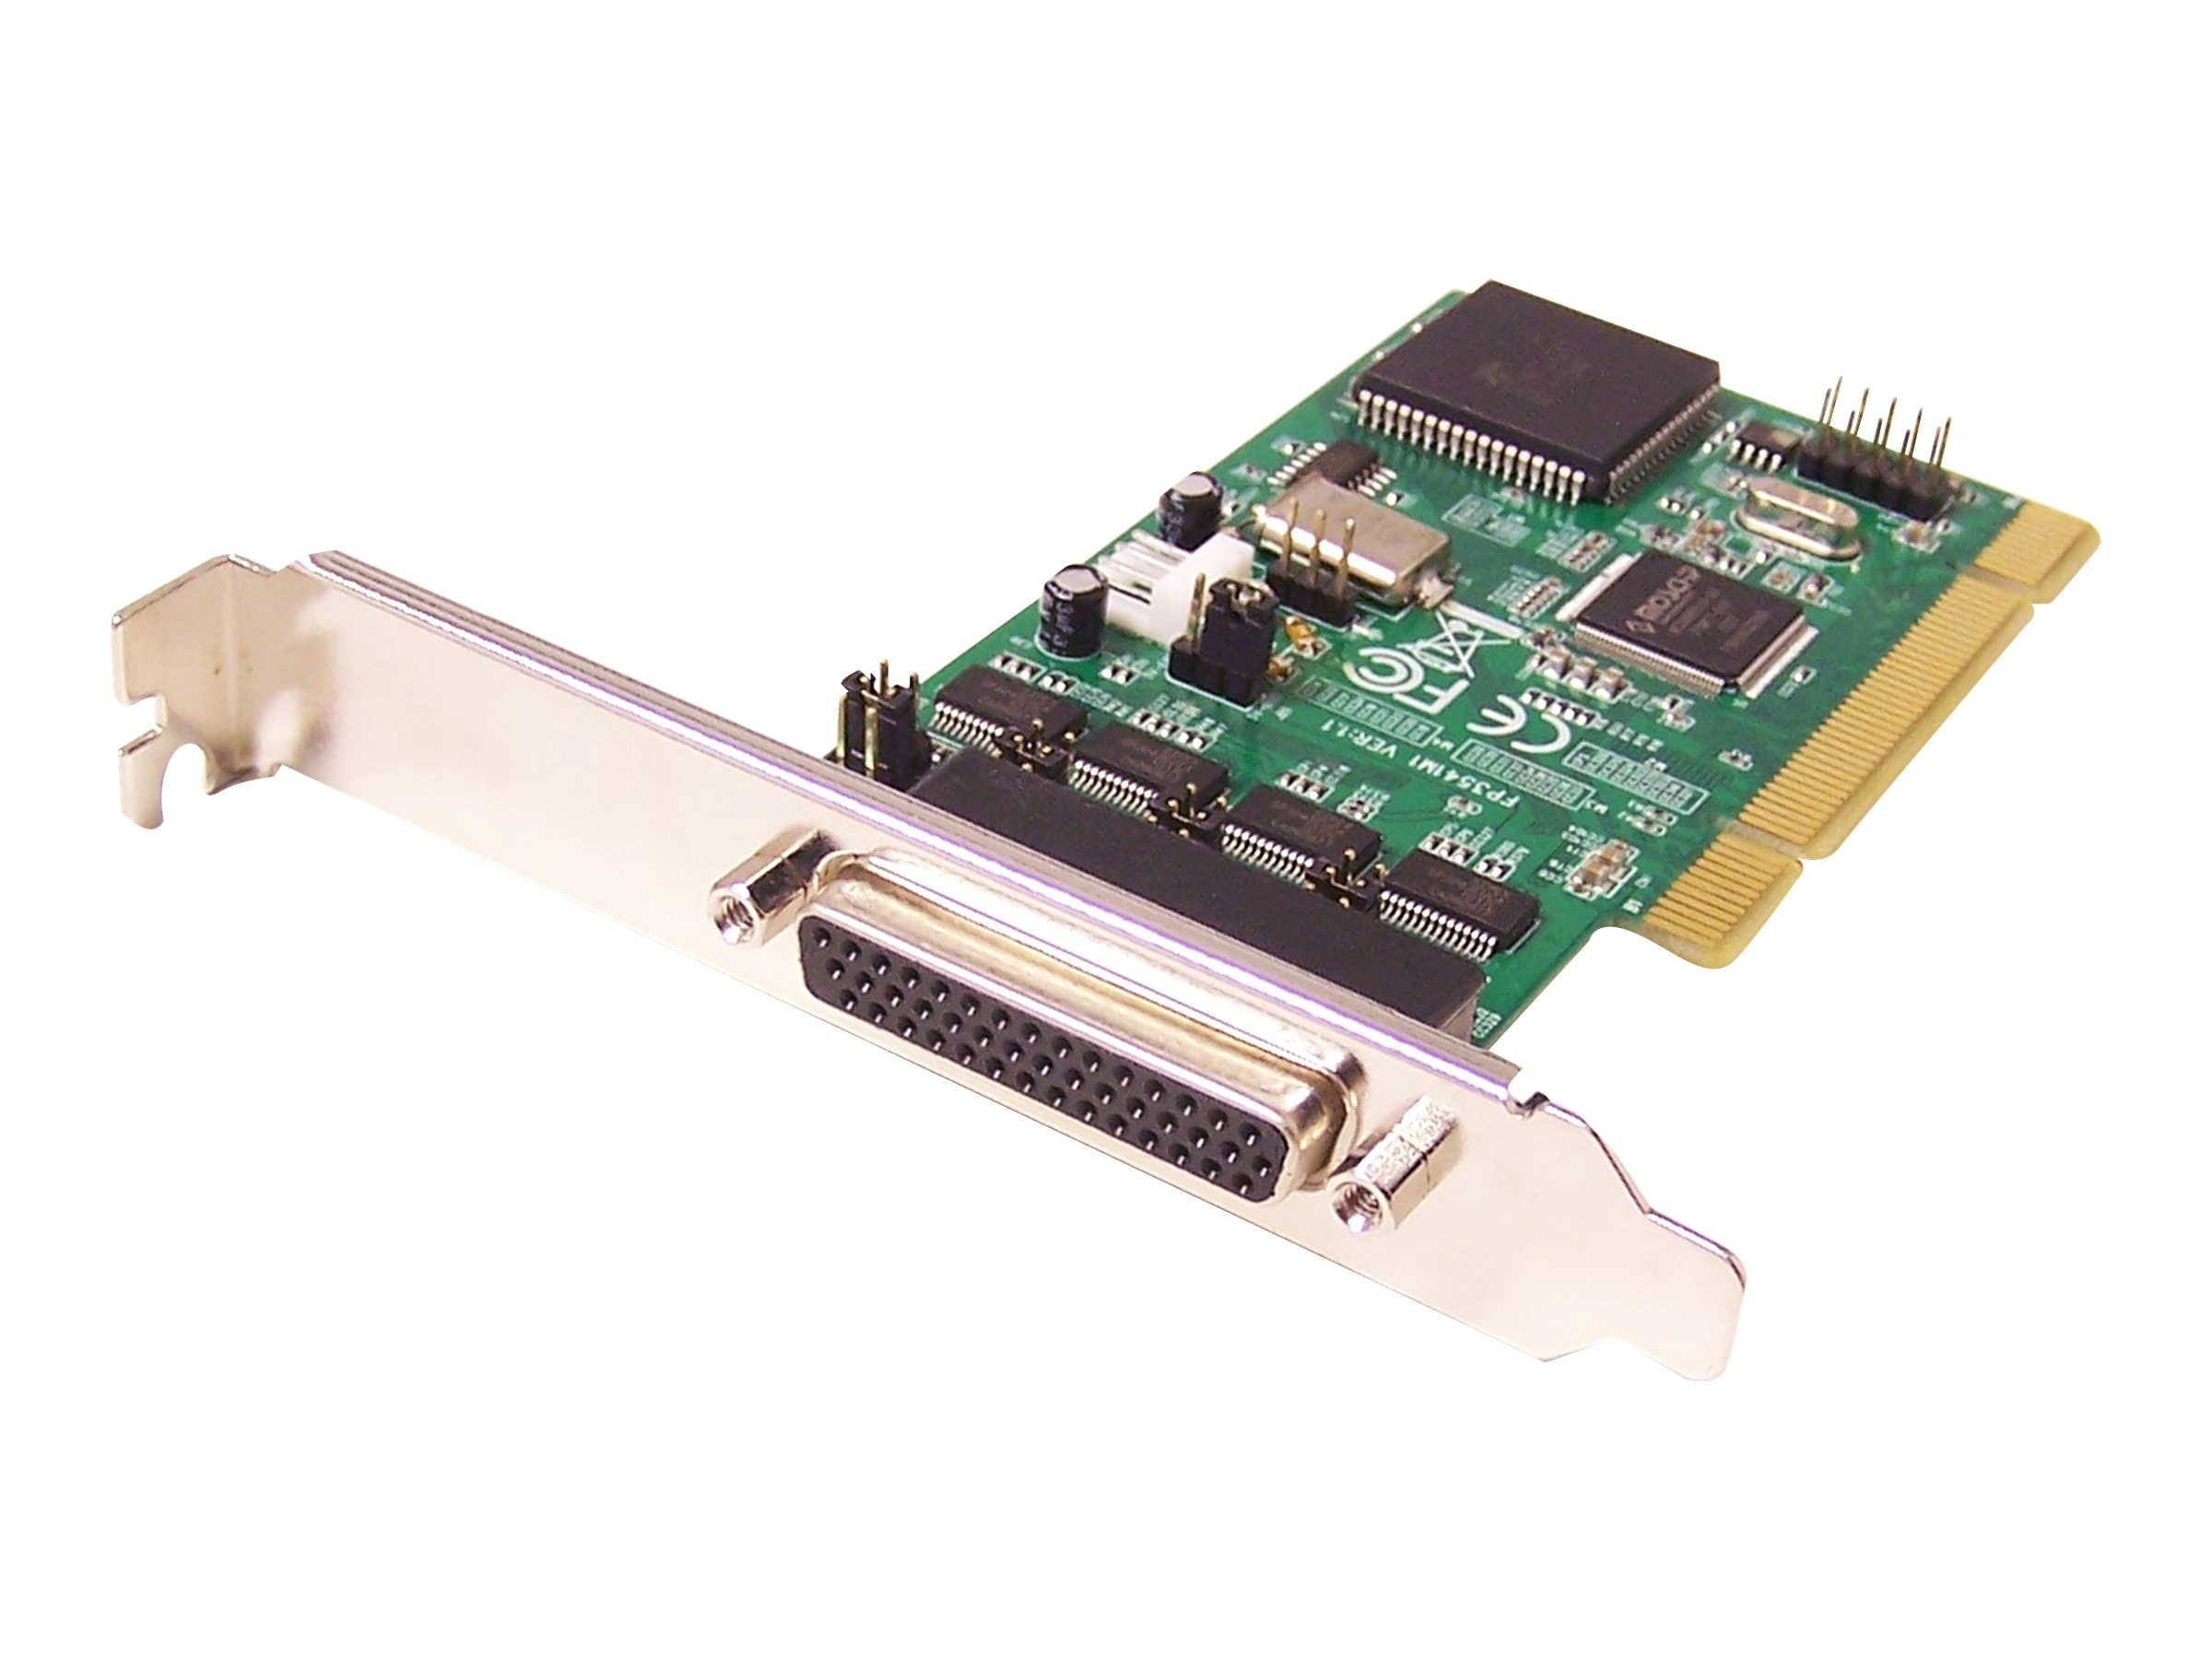 Siig 4-port Industrial RS-232 Unversal PCI Adapter Card w  Power, ID-P40211-S1